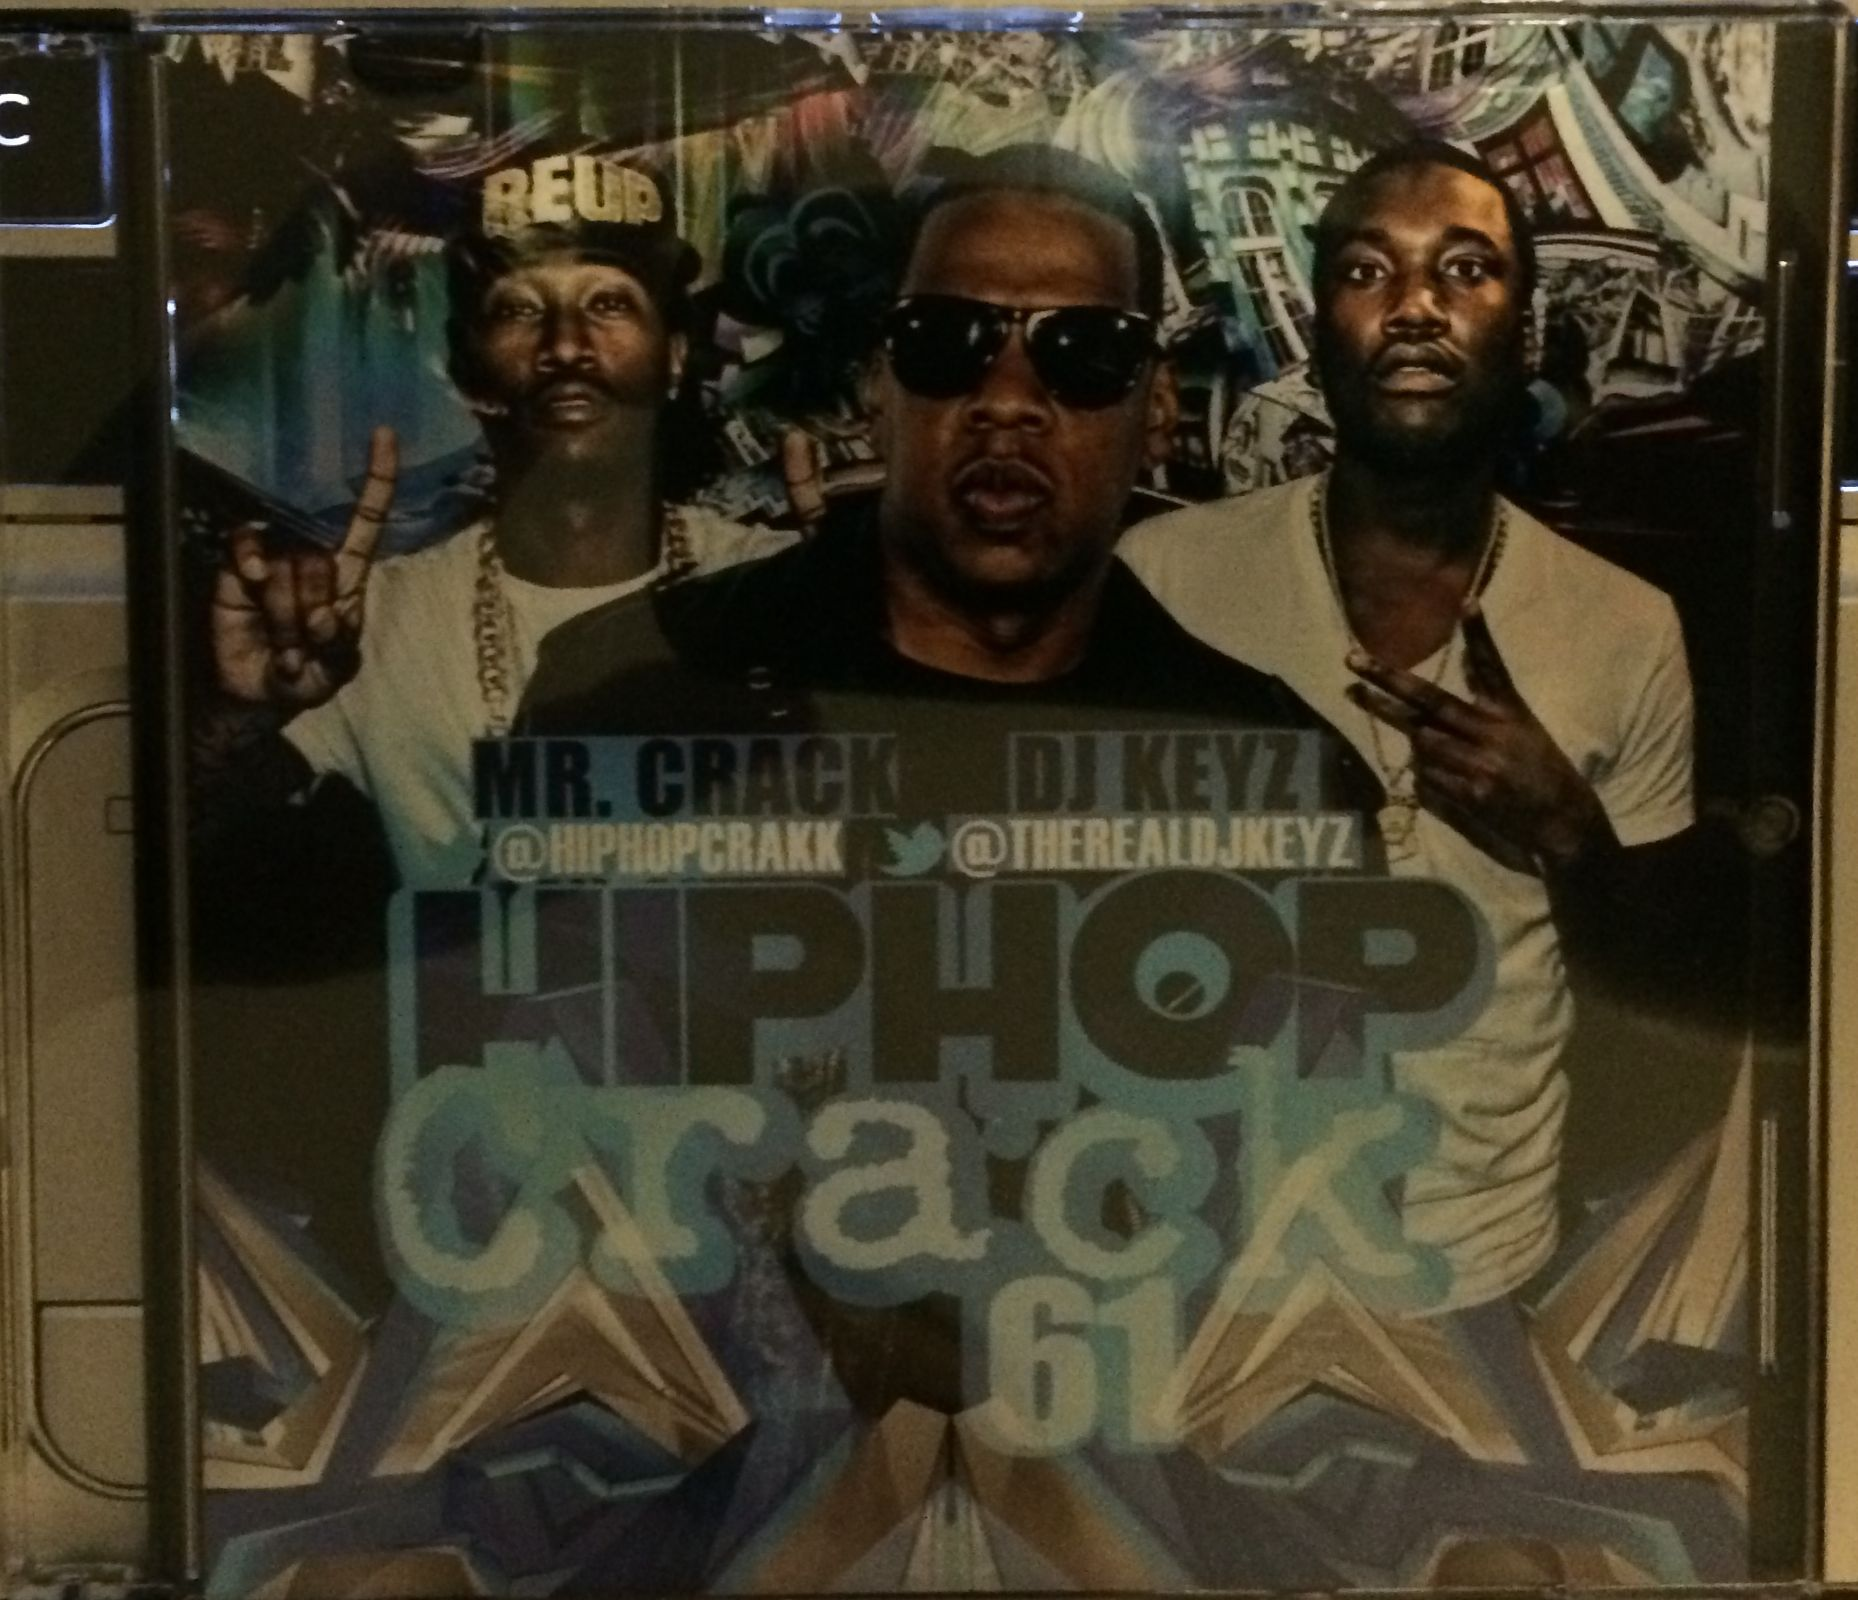 DJ Keyz And Mr. Crack - Hip-Hop Crack 61 (2014)